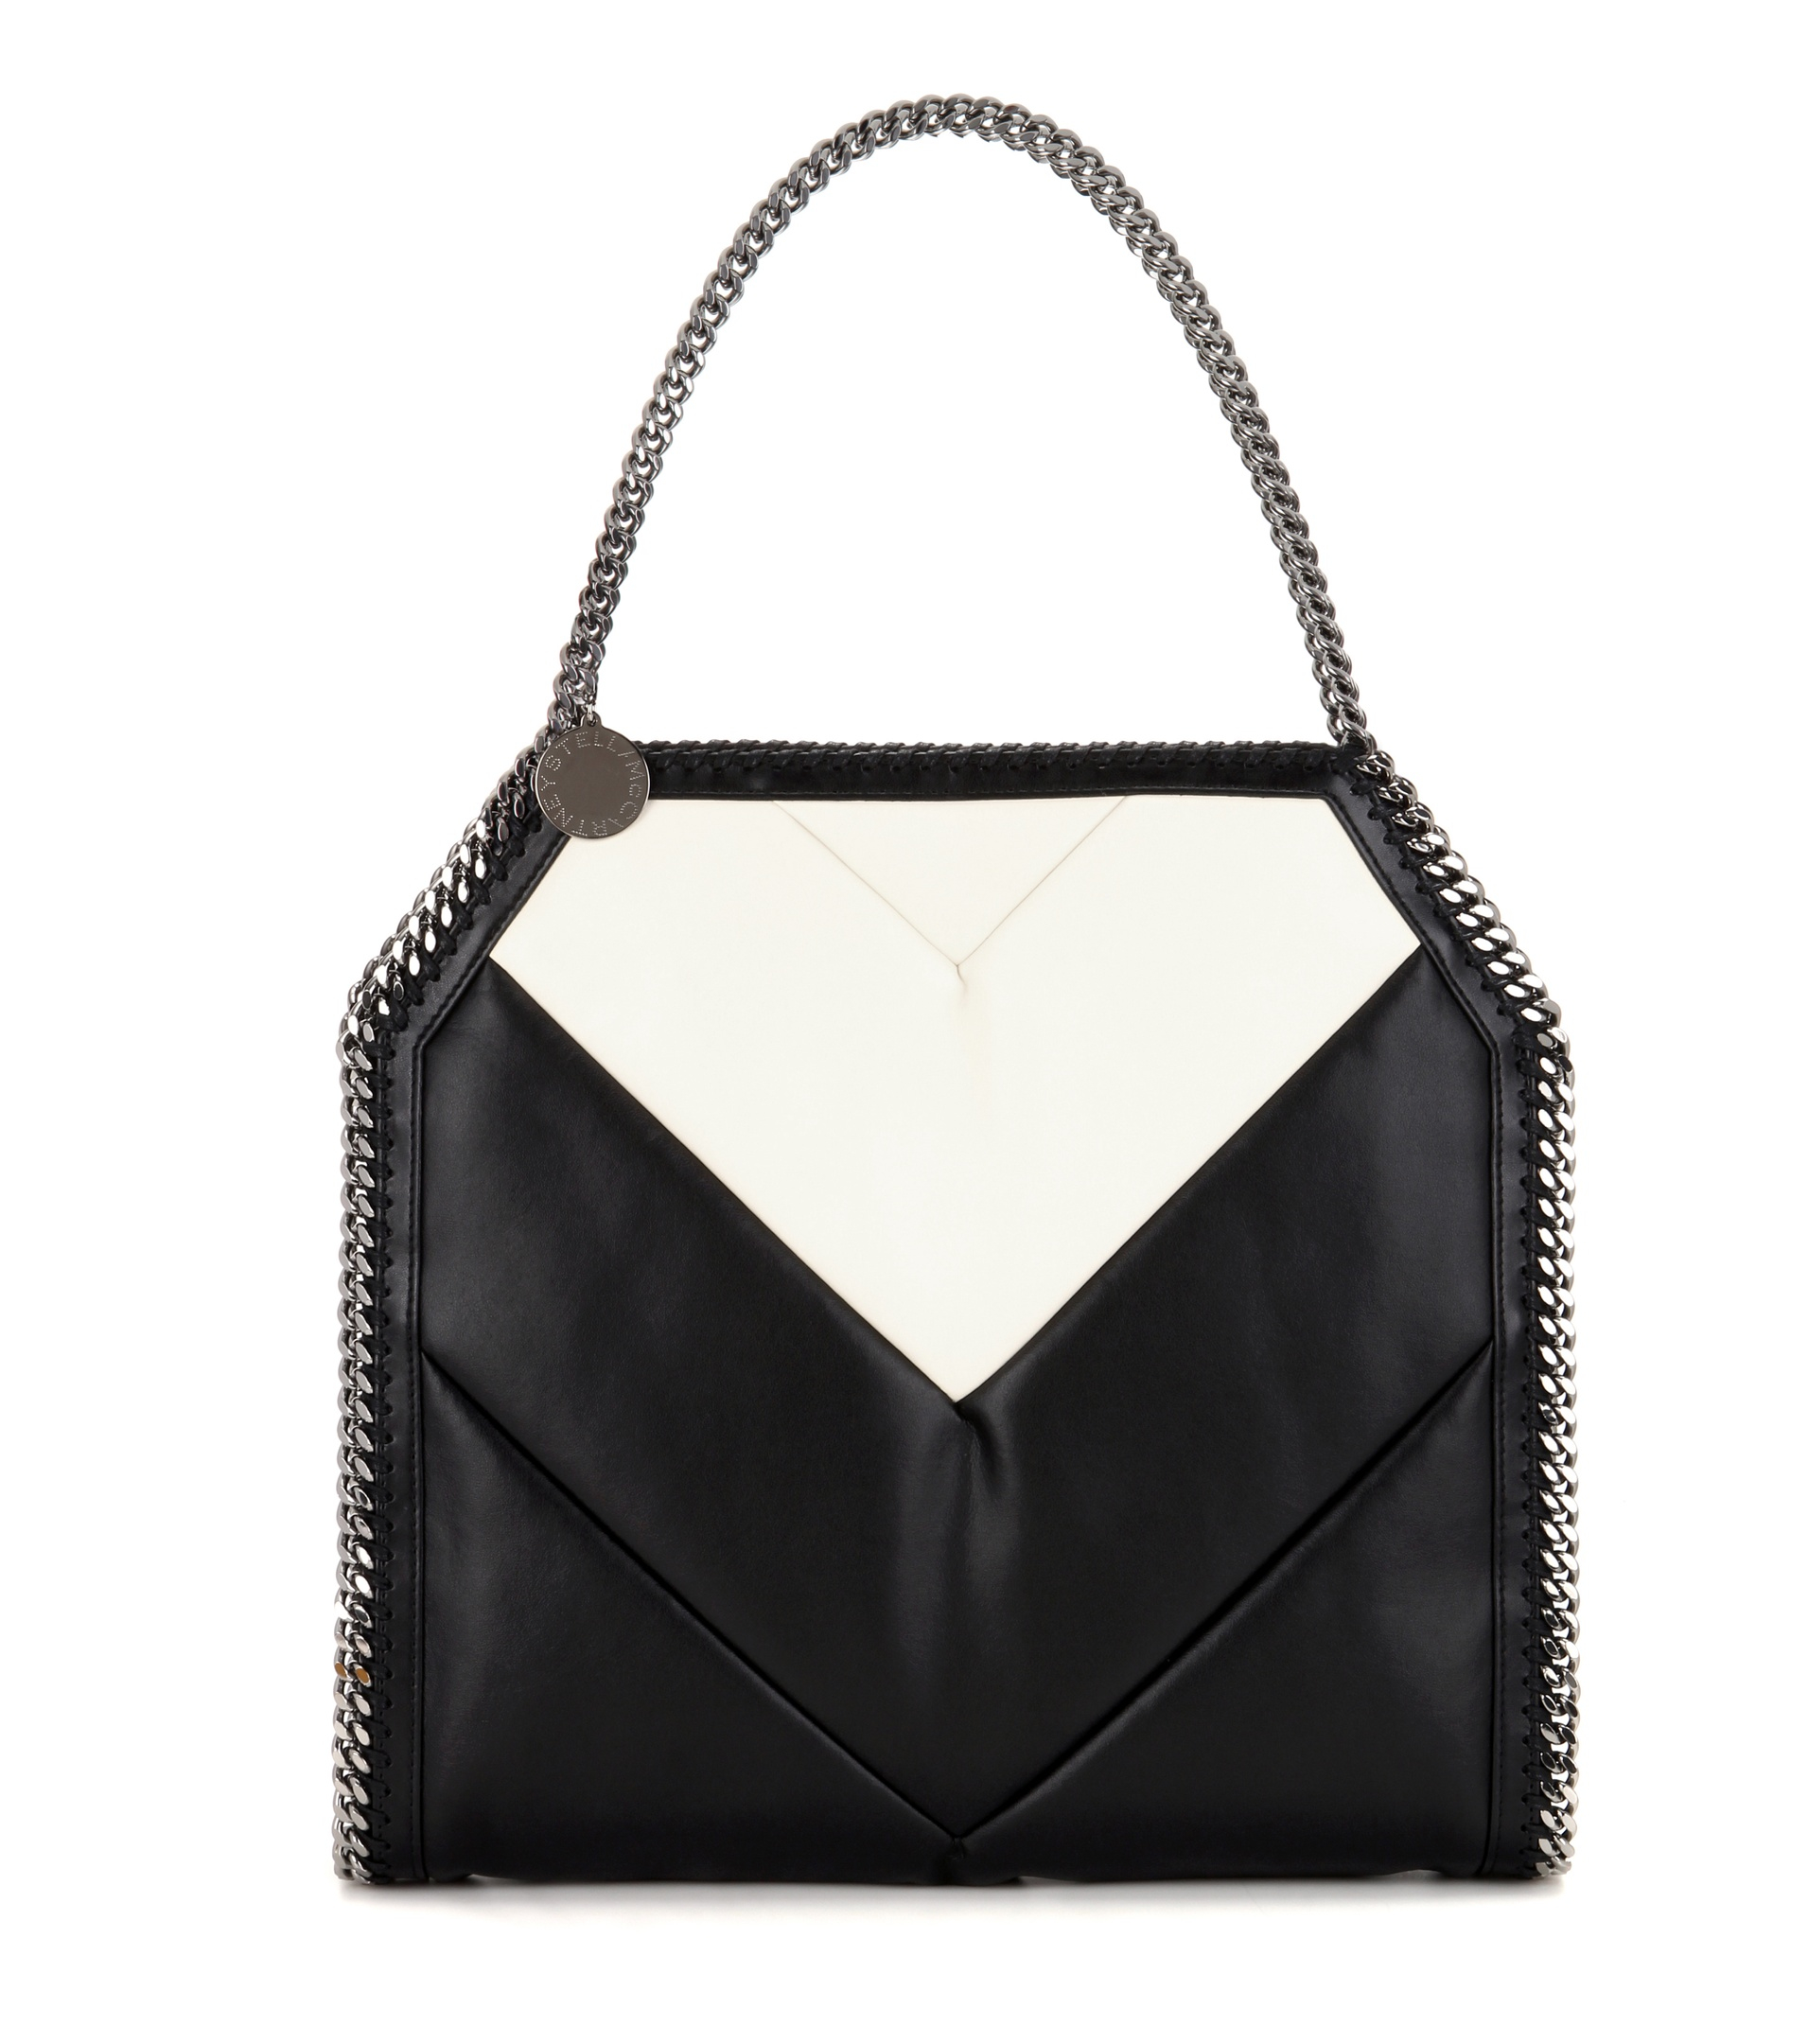 cc20661a85 Lyst - Stella Mccartney Falabella Quilted Small Tote Bag in Black